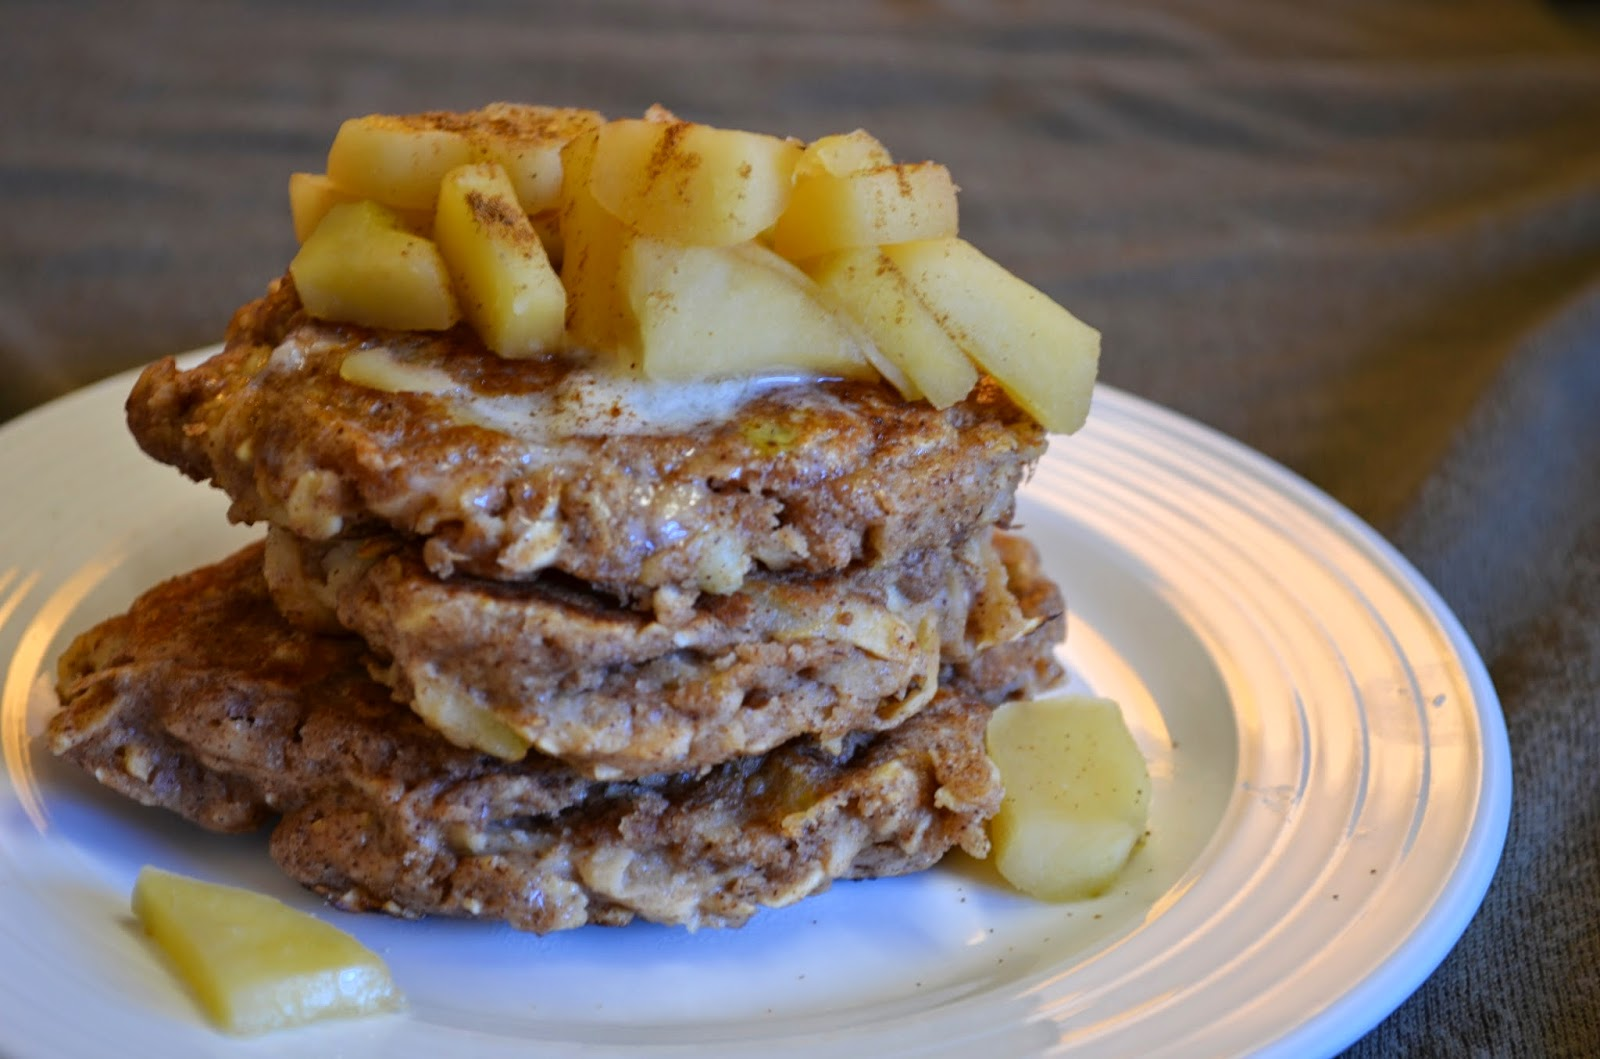 Apple pancakes with vegan butter and stewed apple